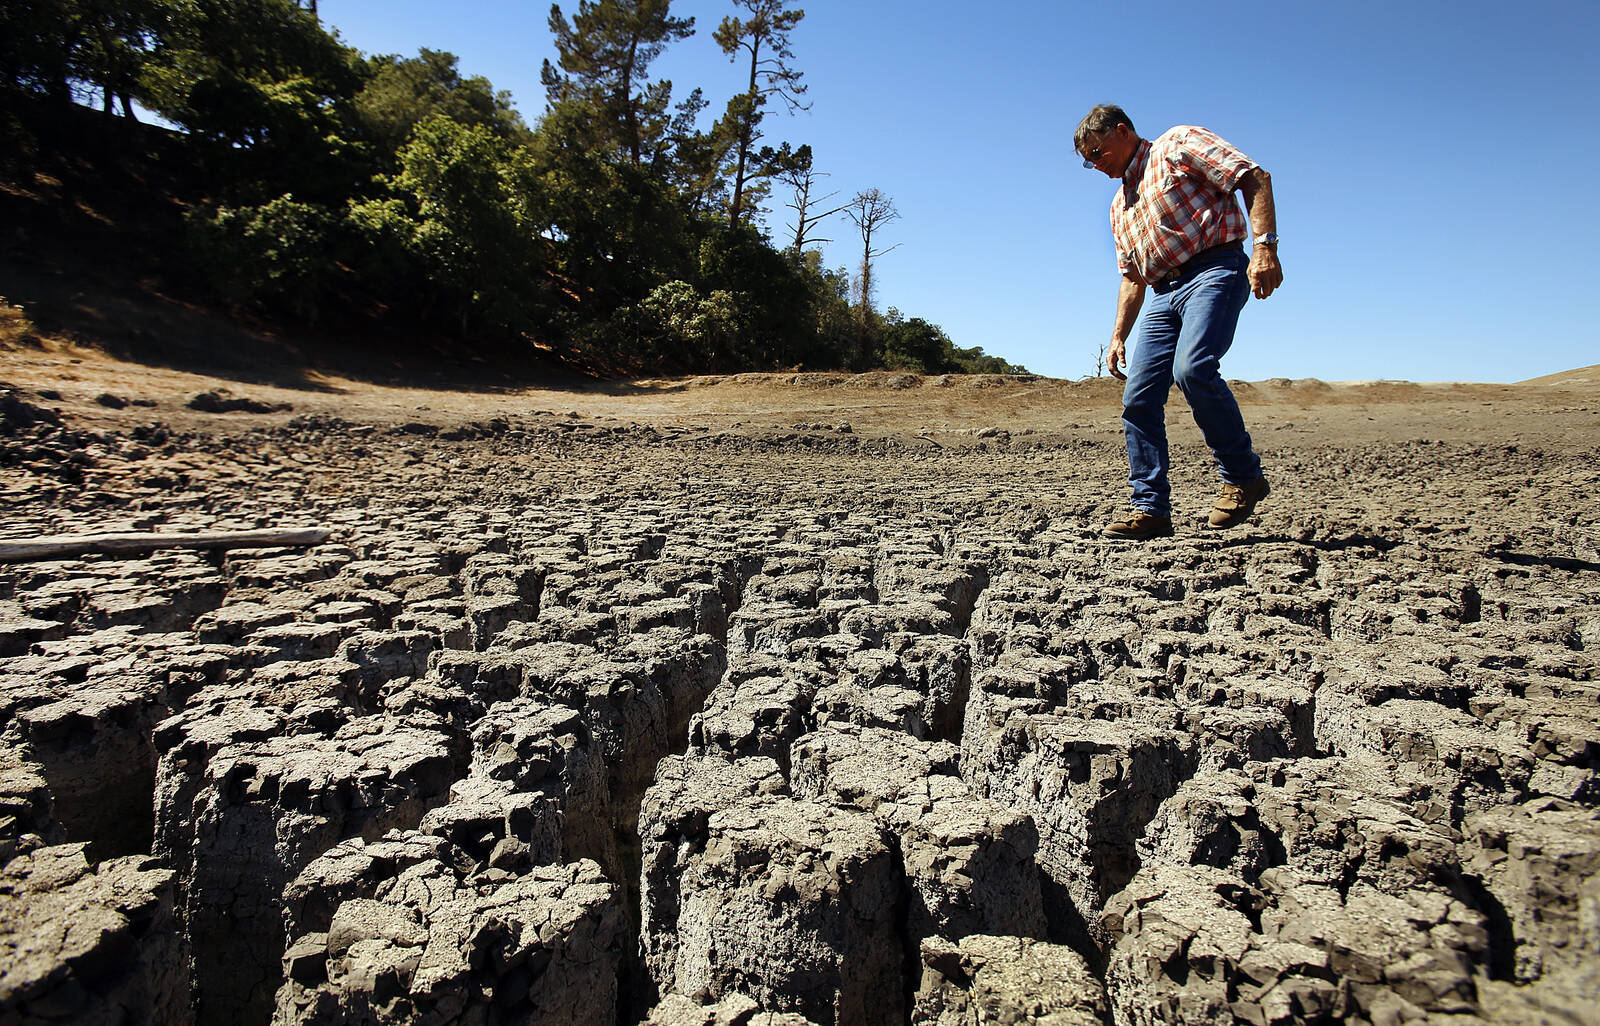 A rancher walks on the cracked remains of a parched lake bed on a ranch along San Simeon Creek in the Santa Lucia Mountain foothills of Cambria that are brown from drought on Oct. 1, 2014. Credit: Al Seib/Los Angeles Times via Getty Images